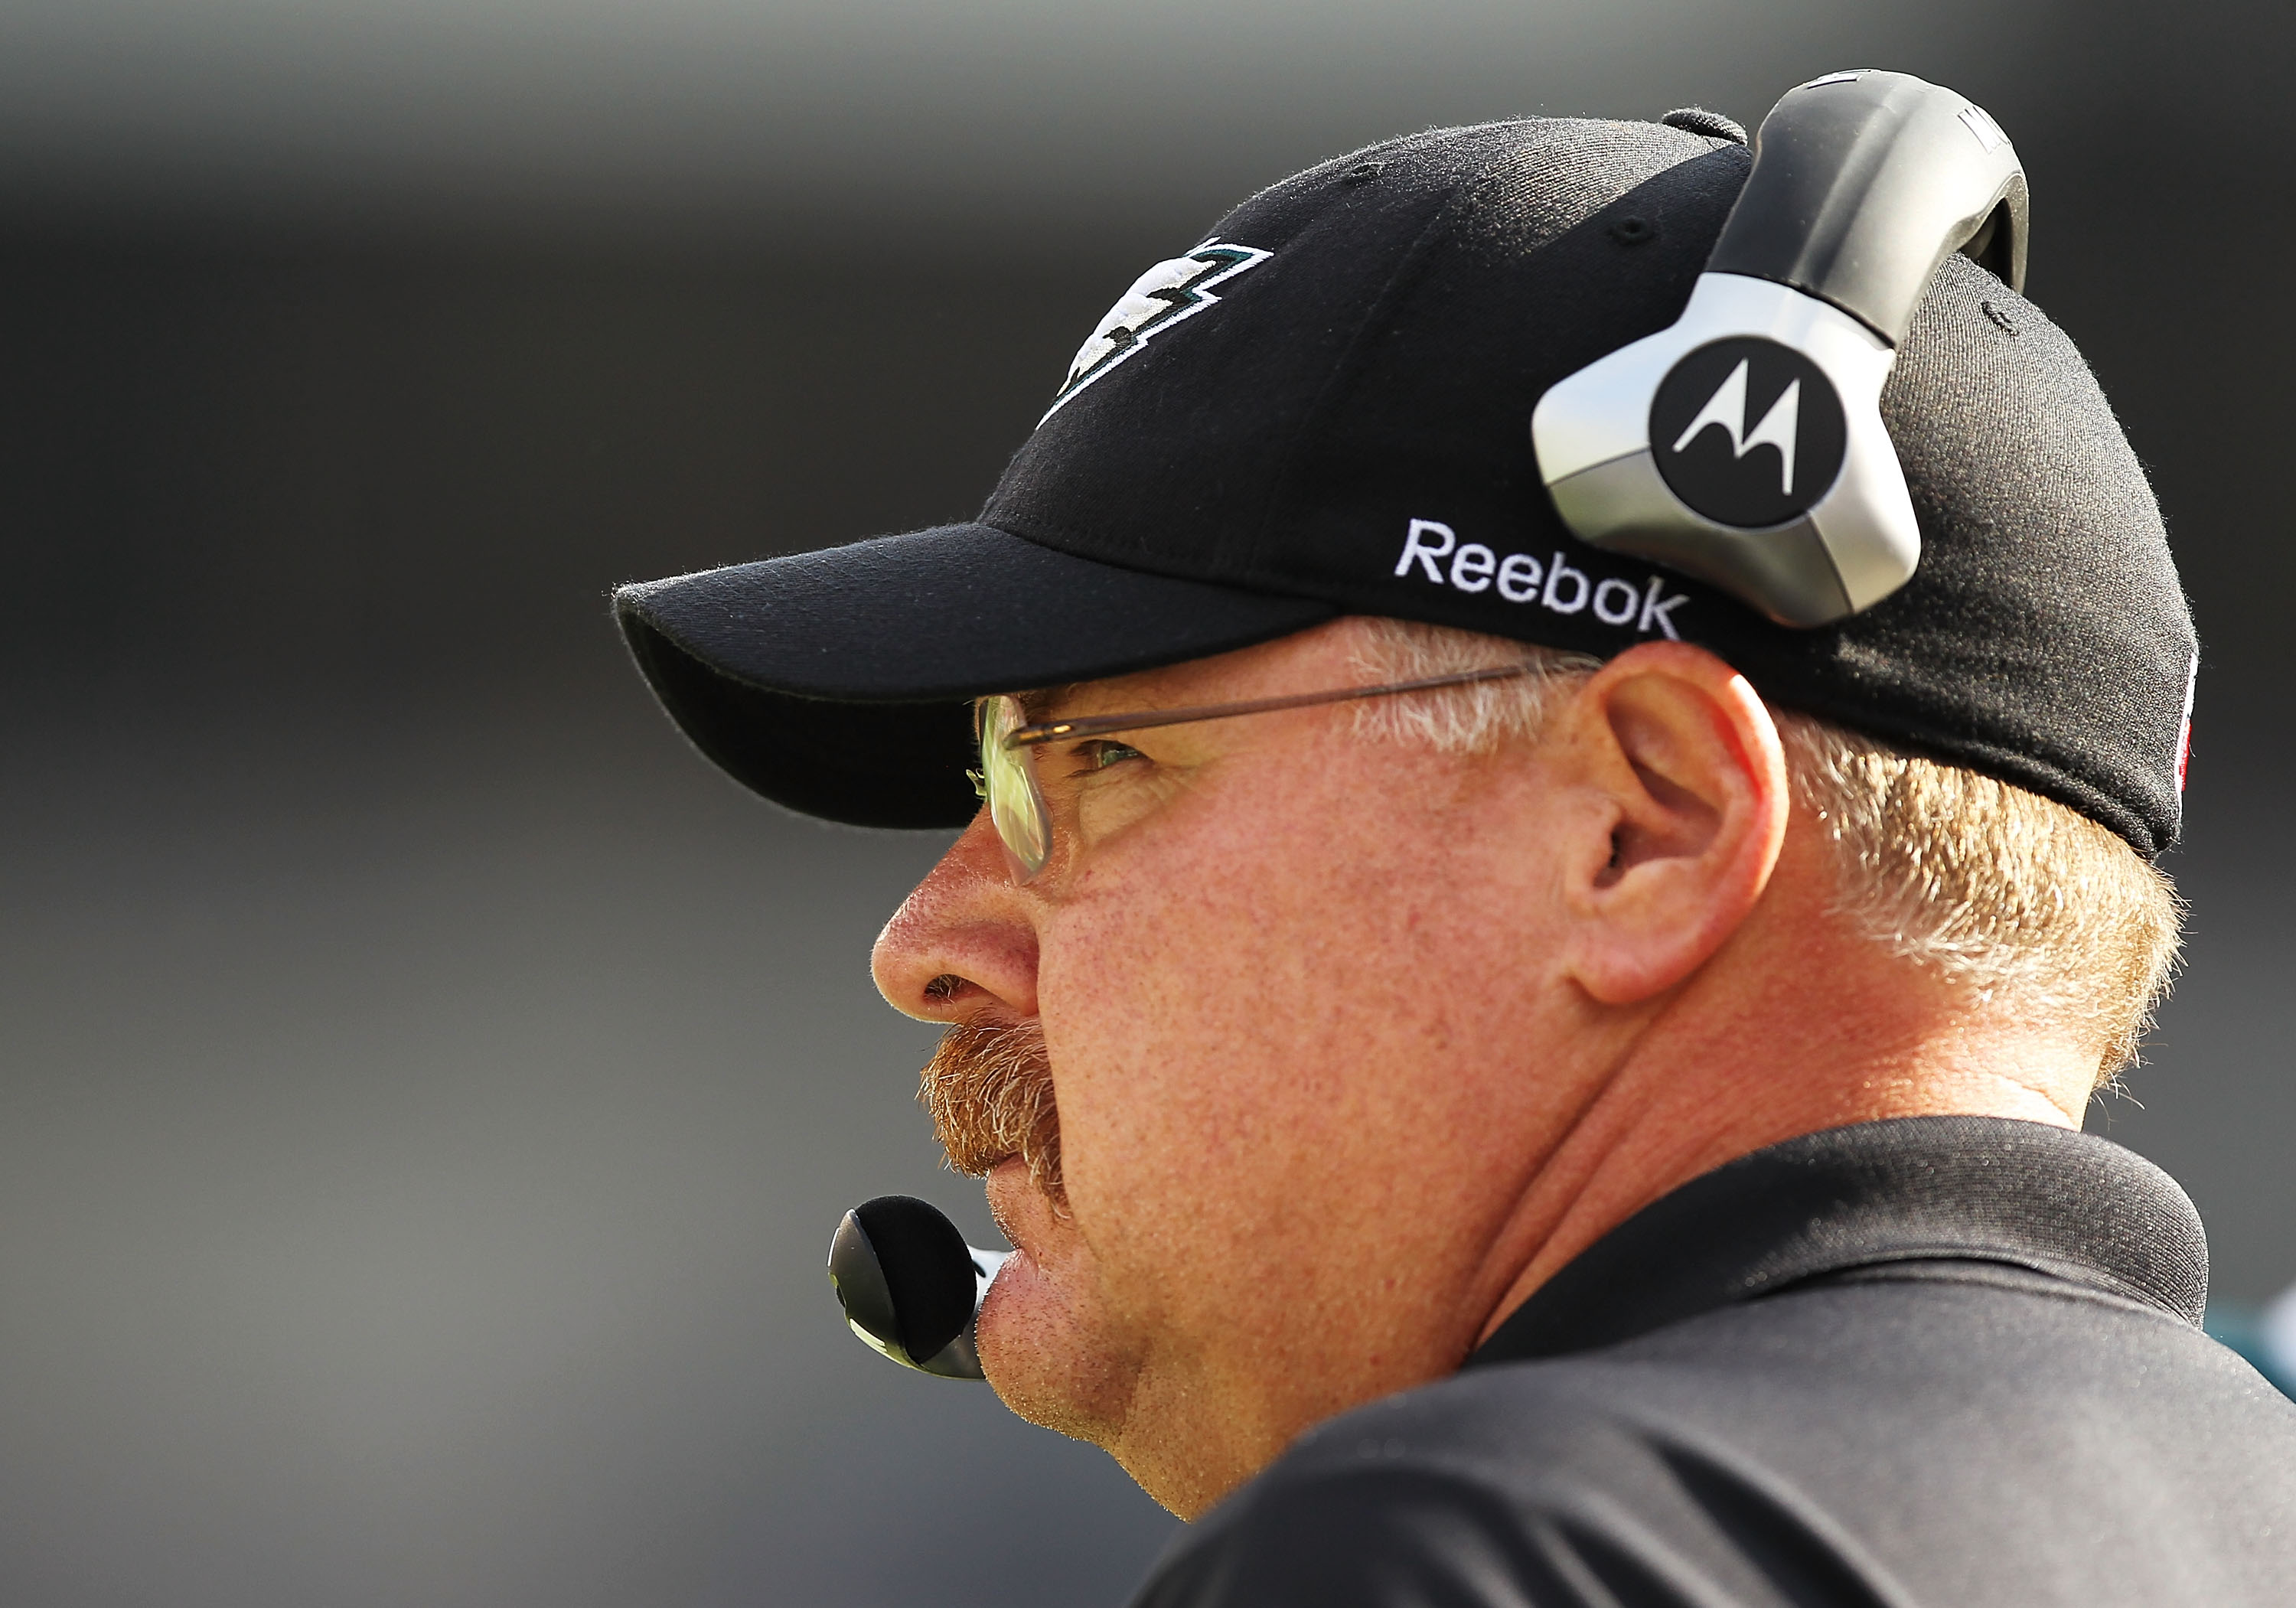 PHILADELPHIA - OCTOBER 17:  Andy Reid, Head Coach of the Philadelphia Eagles looks on against the Atlanta Falcons during their game at Lincoln Financial Field on October 17, 2010 in Philadelphia, Pennsylvania.  (Photo by Al Bello/Getty Images)